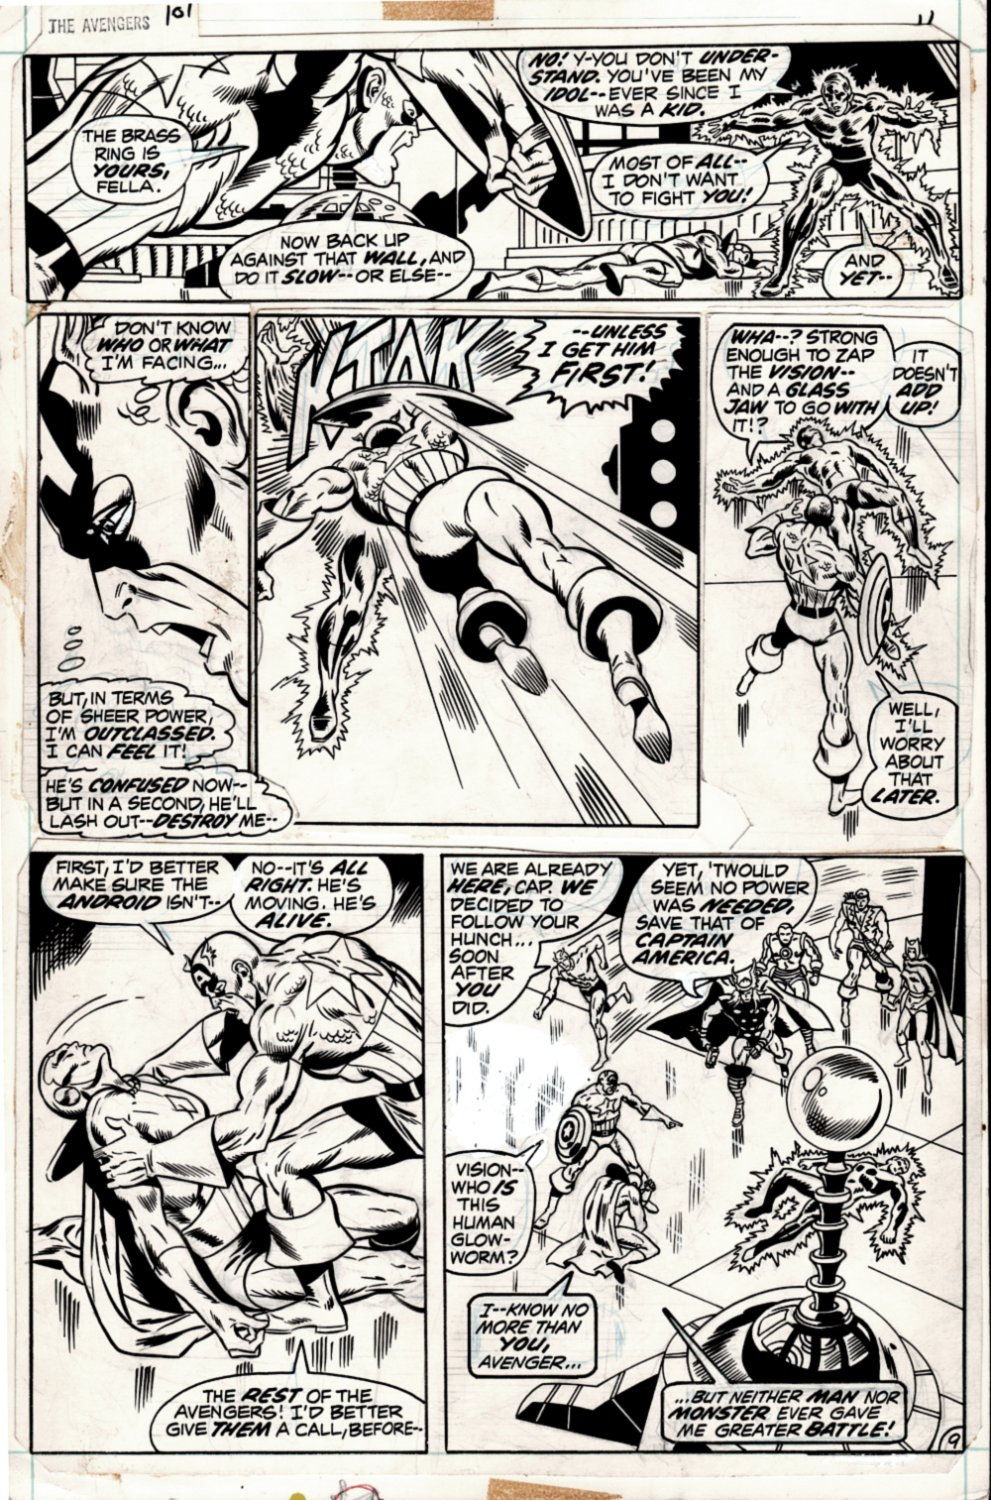 Avengers #101 p 9 (VERY FIRST RICH BUCKLER AVENGERS ART! CAP BATTLES TO SAVE THE VISIONS LIFE!) 1972